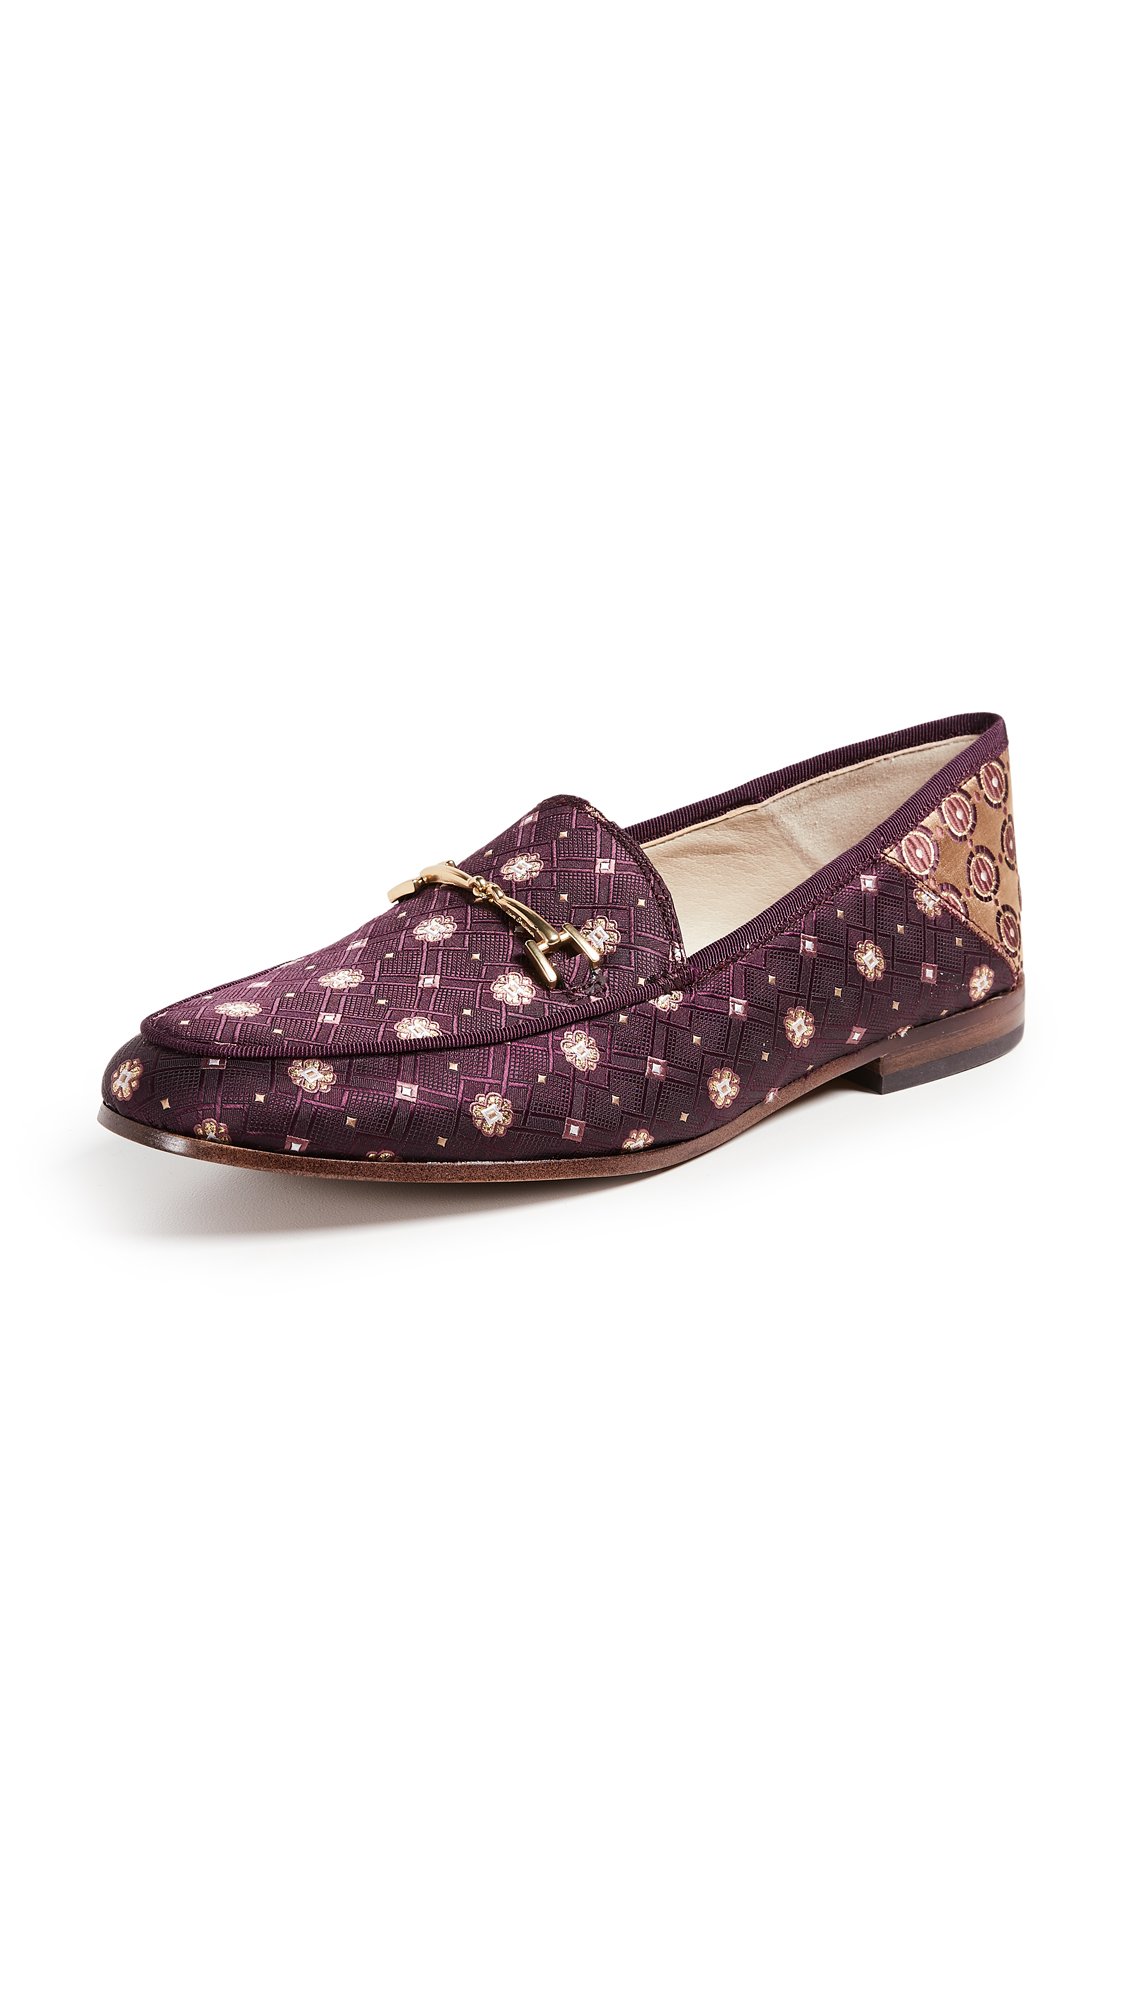 Sam Edelman Loraine Loafers - Wine Multi/Warm Yellow Multi